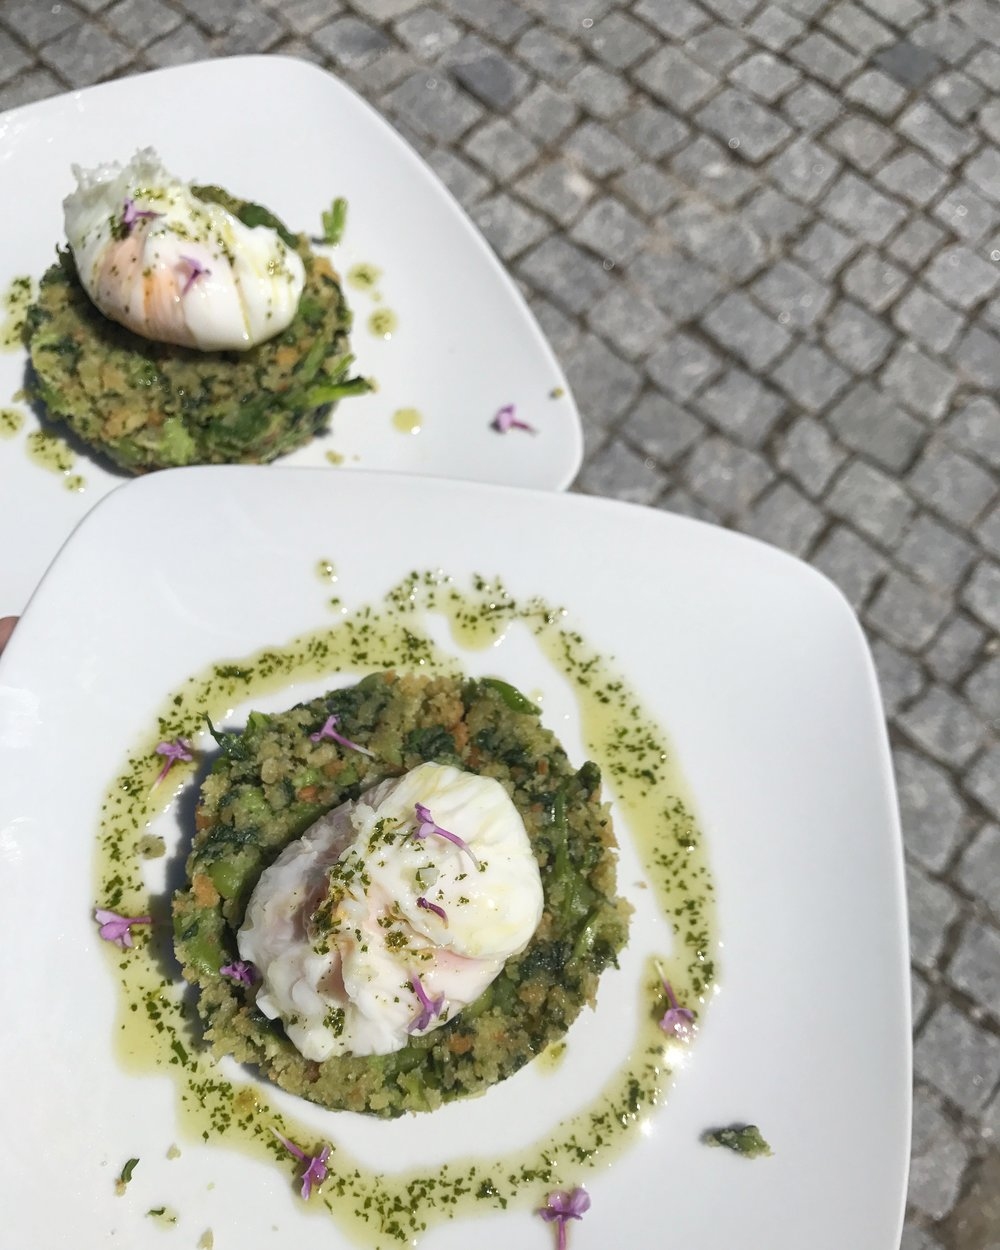 For the vegetarians out there, bread-fava beans-turnip green  migas , soft-poached egg, herbed olive oil.